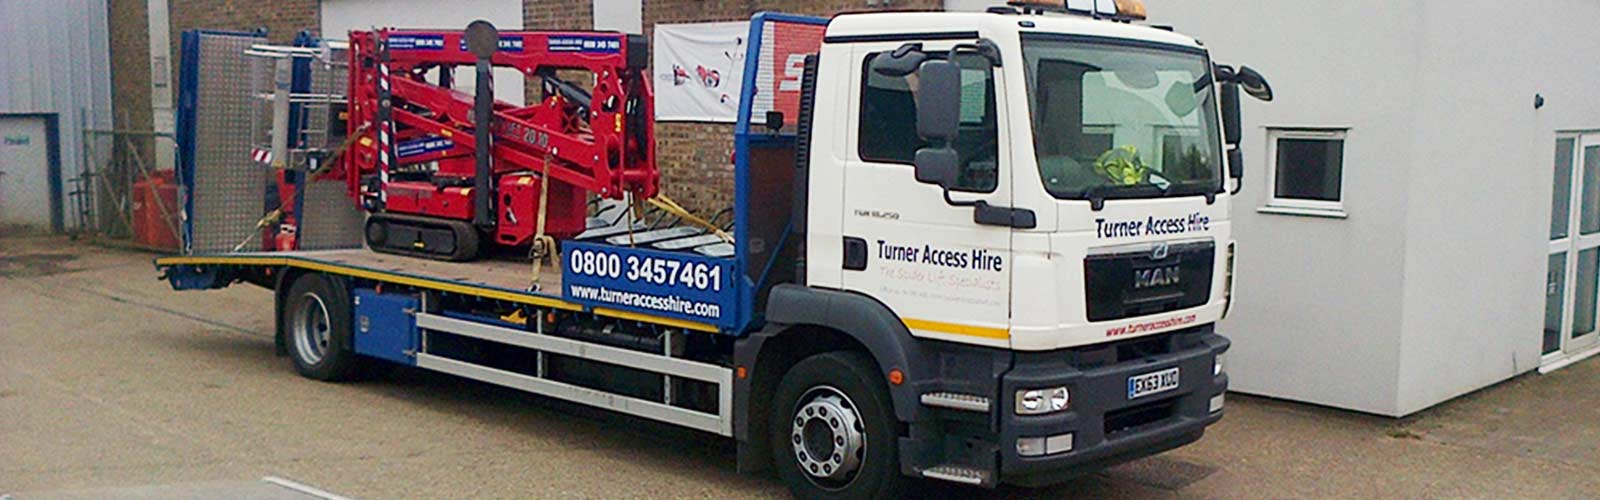 turner_access_hire_lorry